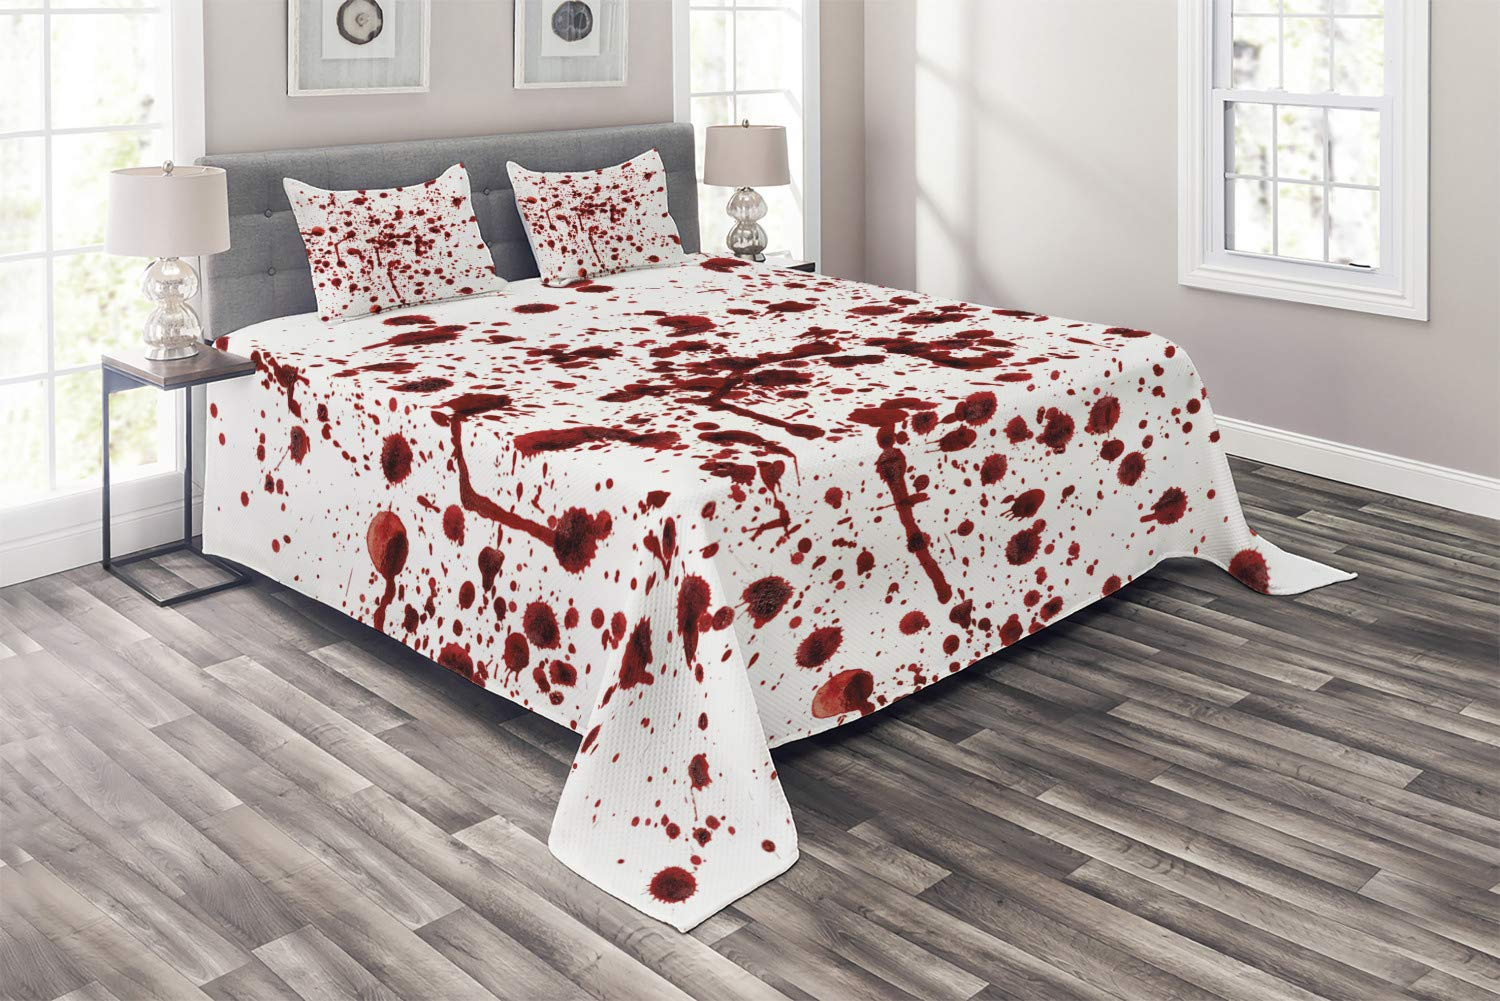 Ambesonne Horror Coverlet, Splashes of Blood Grunge Style Bloodstain Horror Scary Zombie Halloween Themed Print, 3 Piece Decorative Quilted Bedspread Set with 2 Pillow Shams, Queen Size, Red White